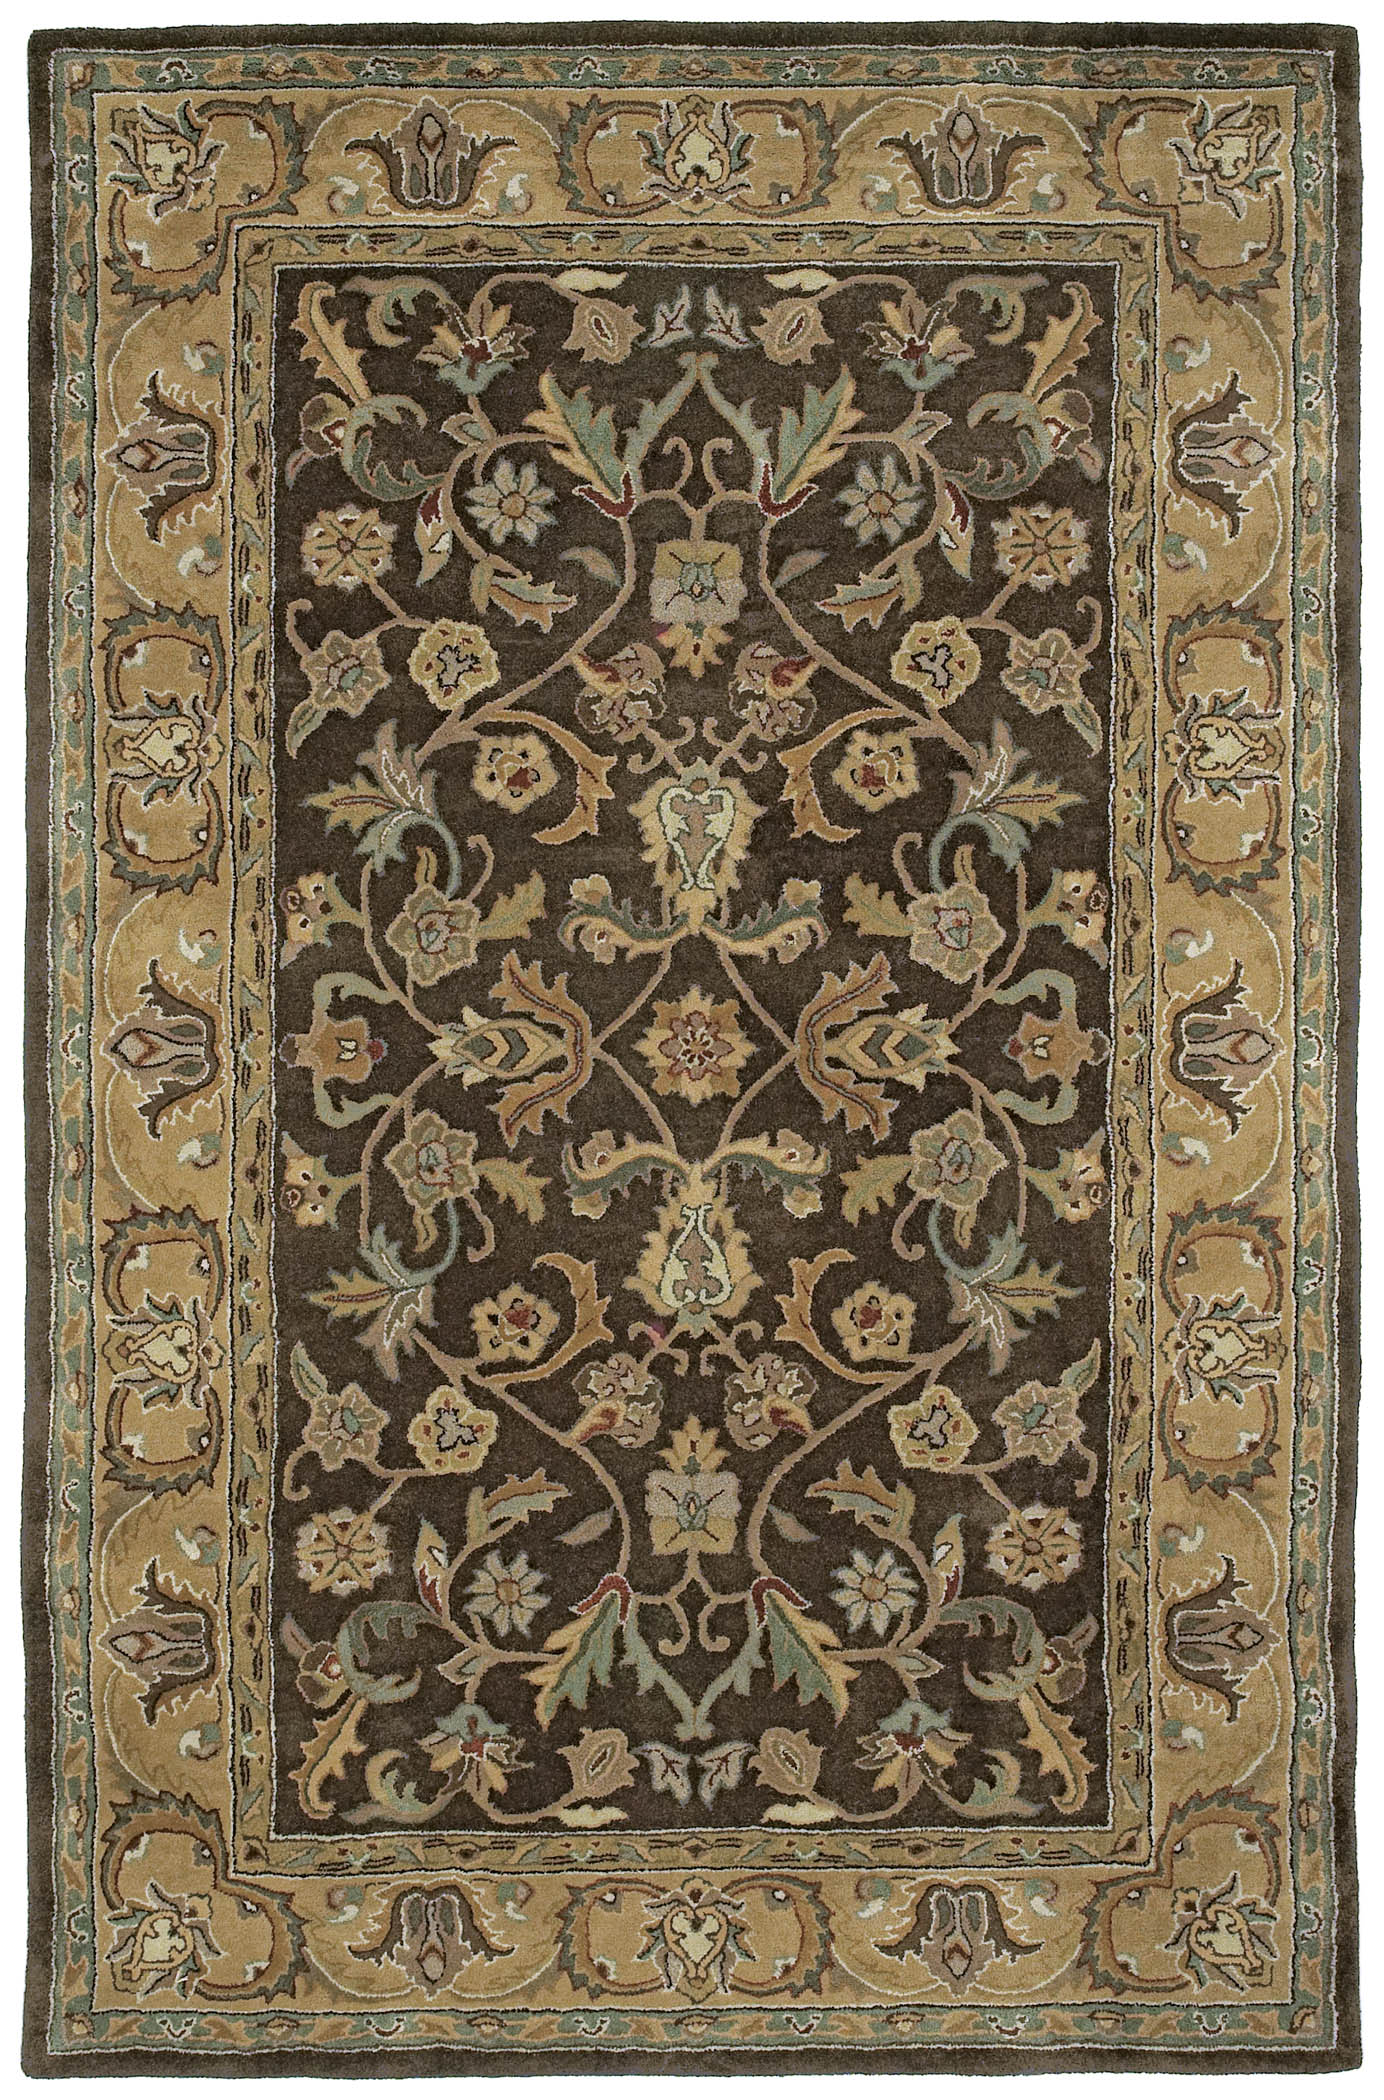 William Chocolate 6001-40 Mystic Rug by Kaleen